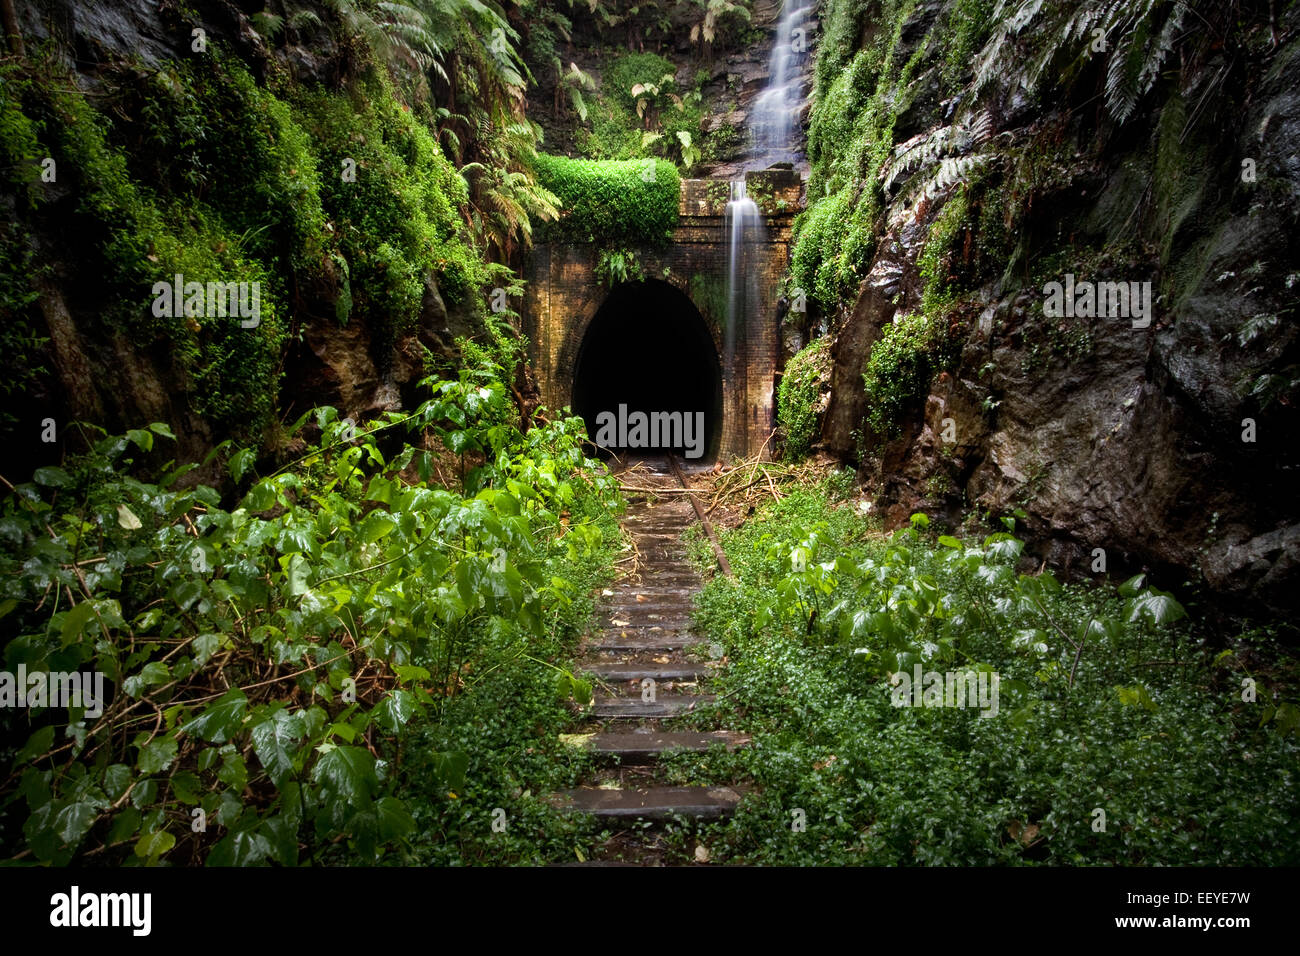 abandon train tunnel - Stock Image